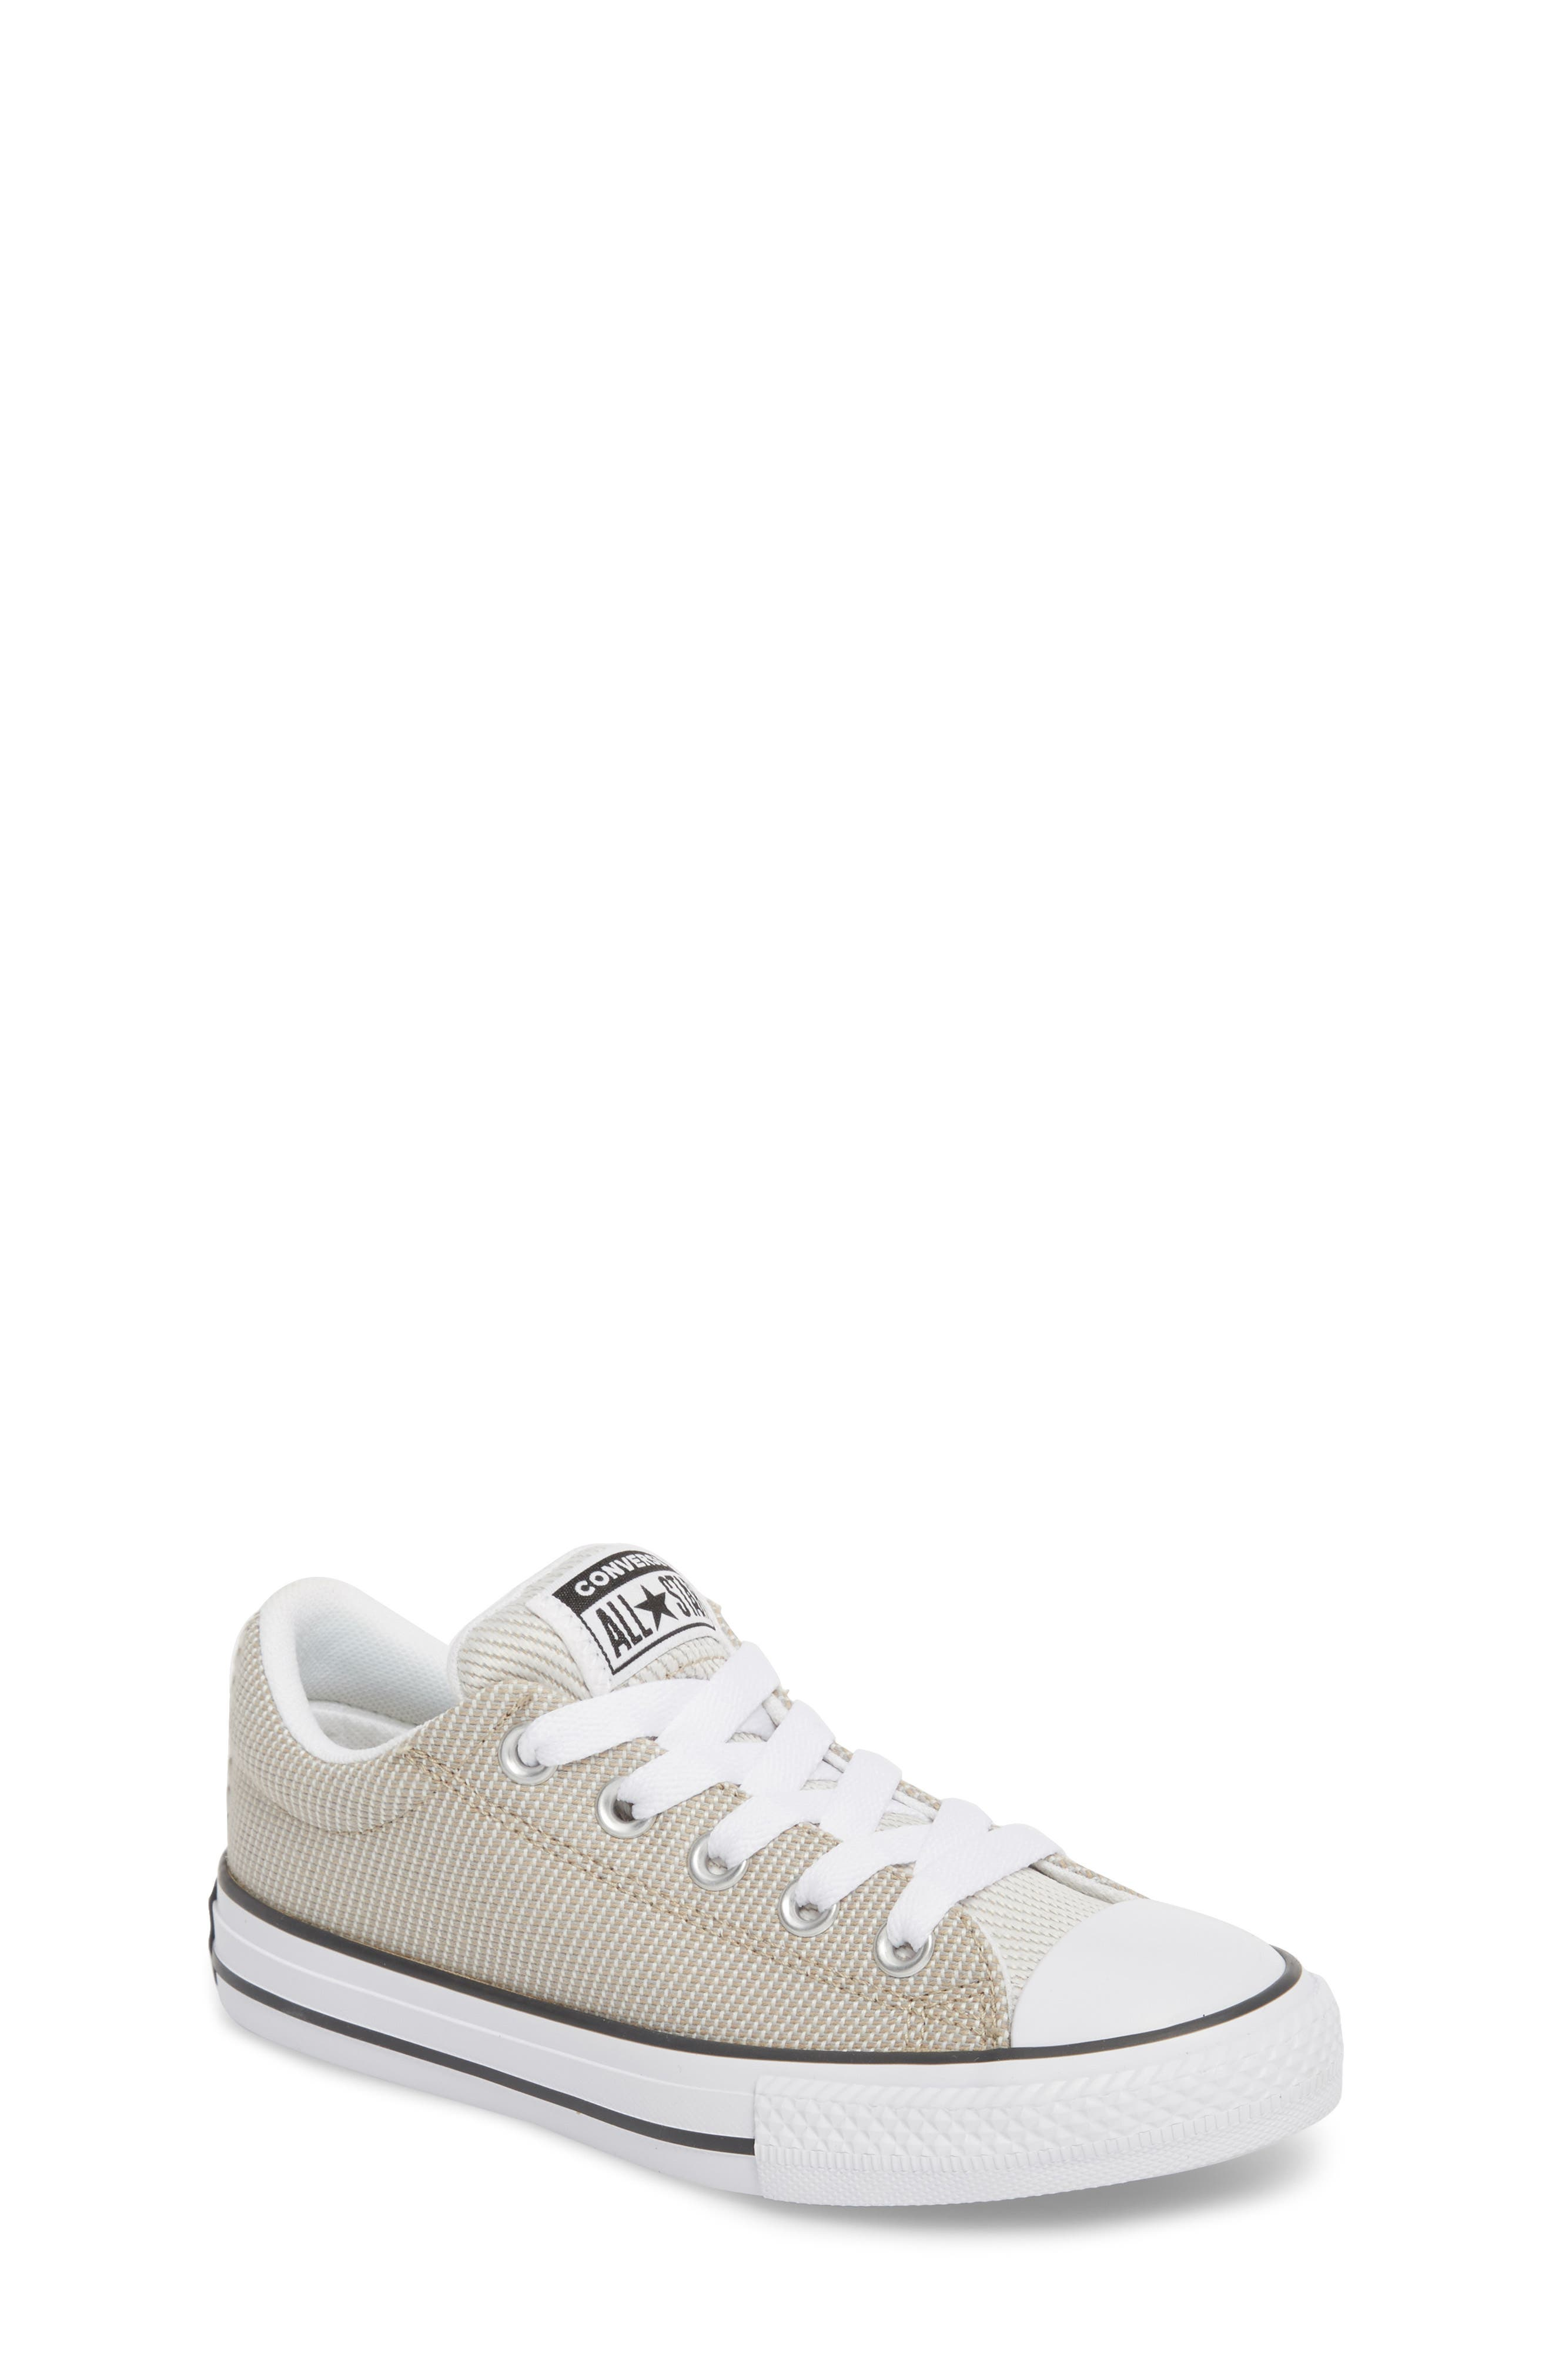 Chuck Taylor<sup>®</sup> All Star<sup>®</sup> Woven Street Sneaker,                             Main thumbnail 1, color,                             VINTAGE KHAKI